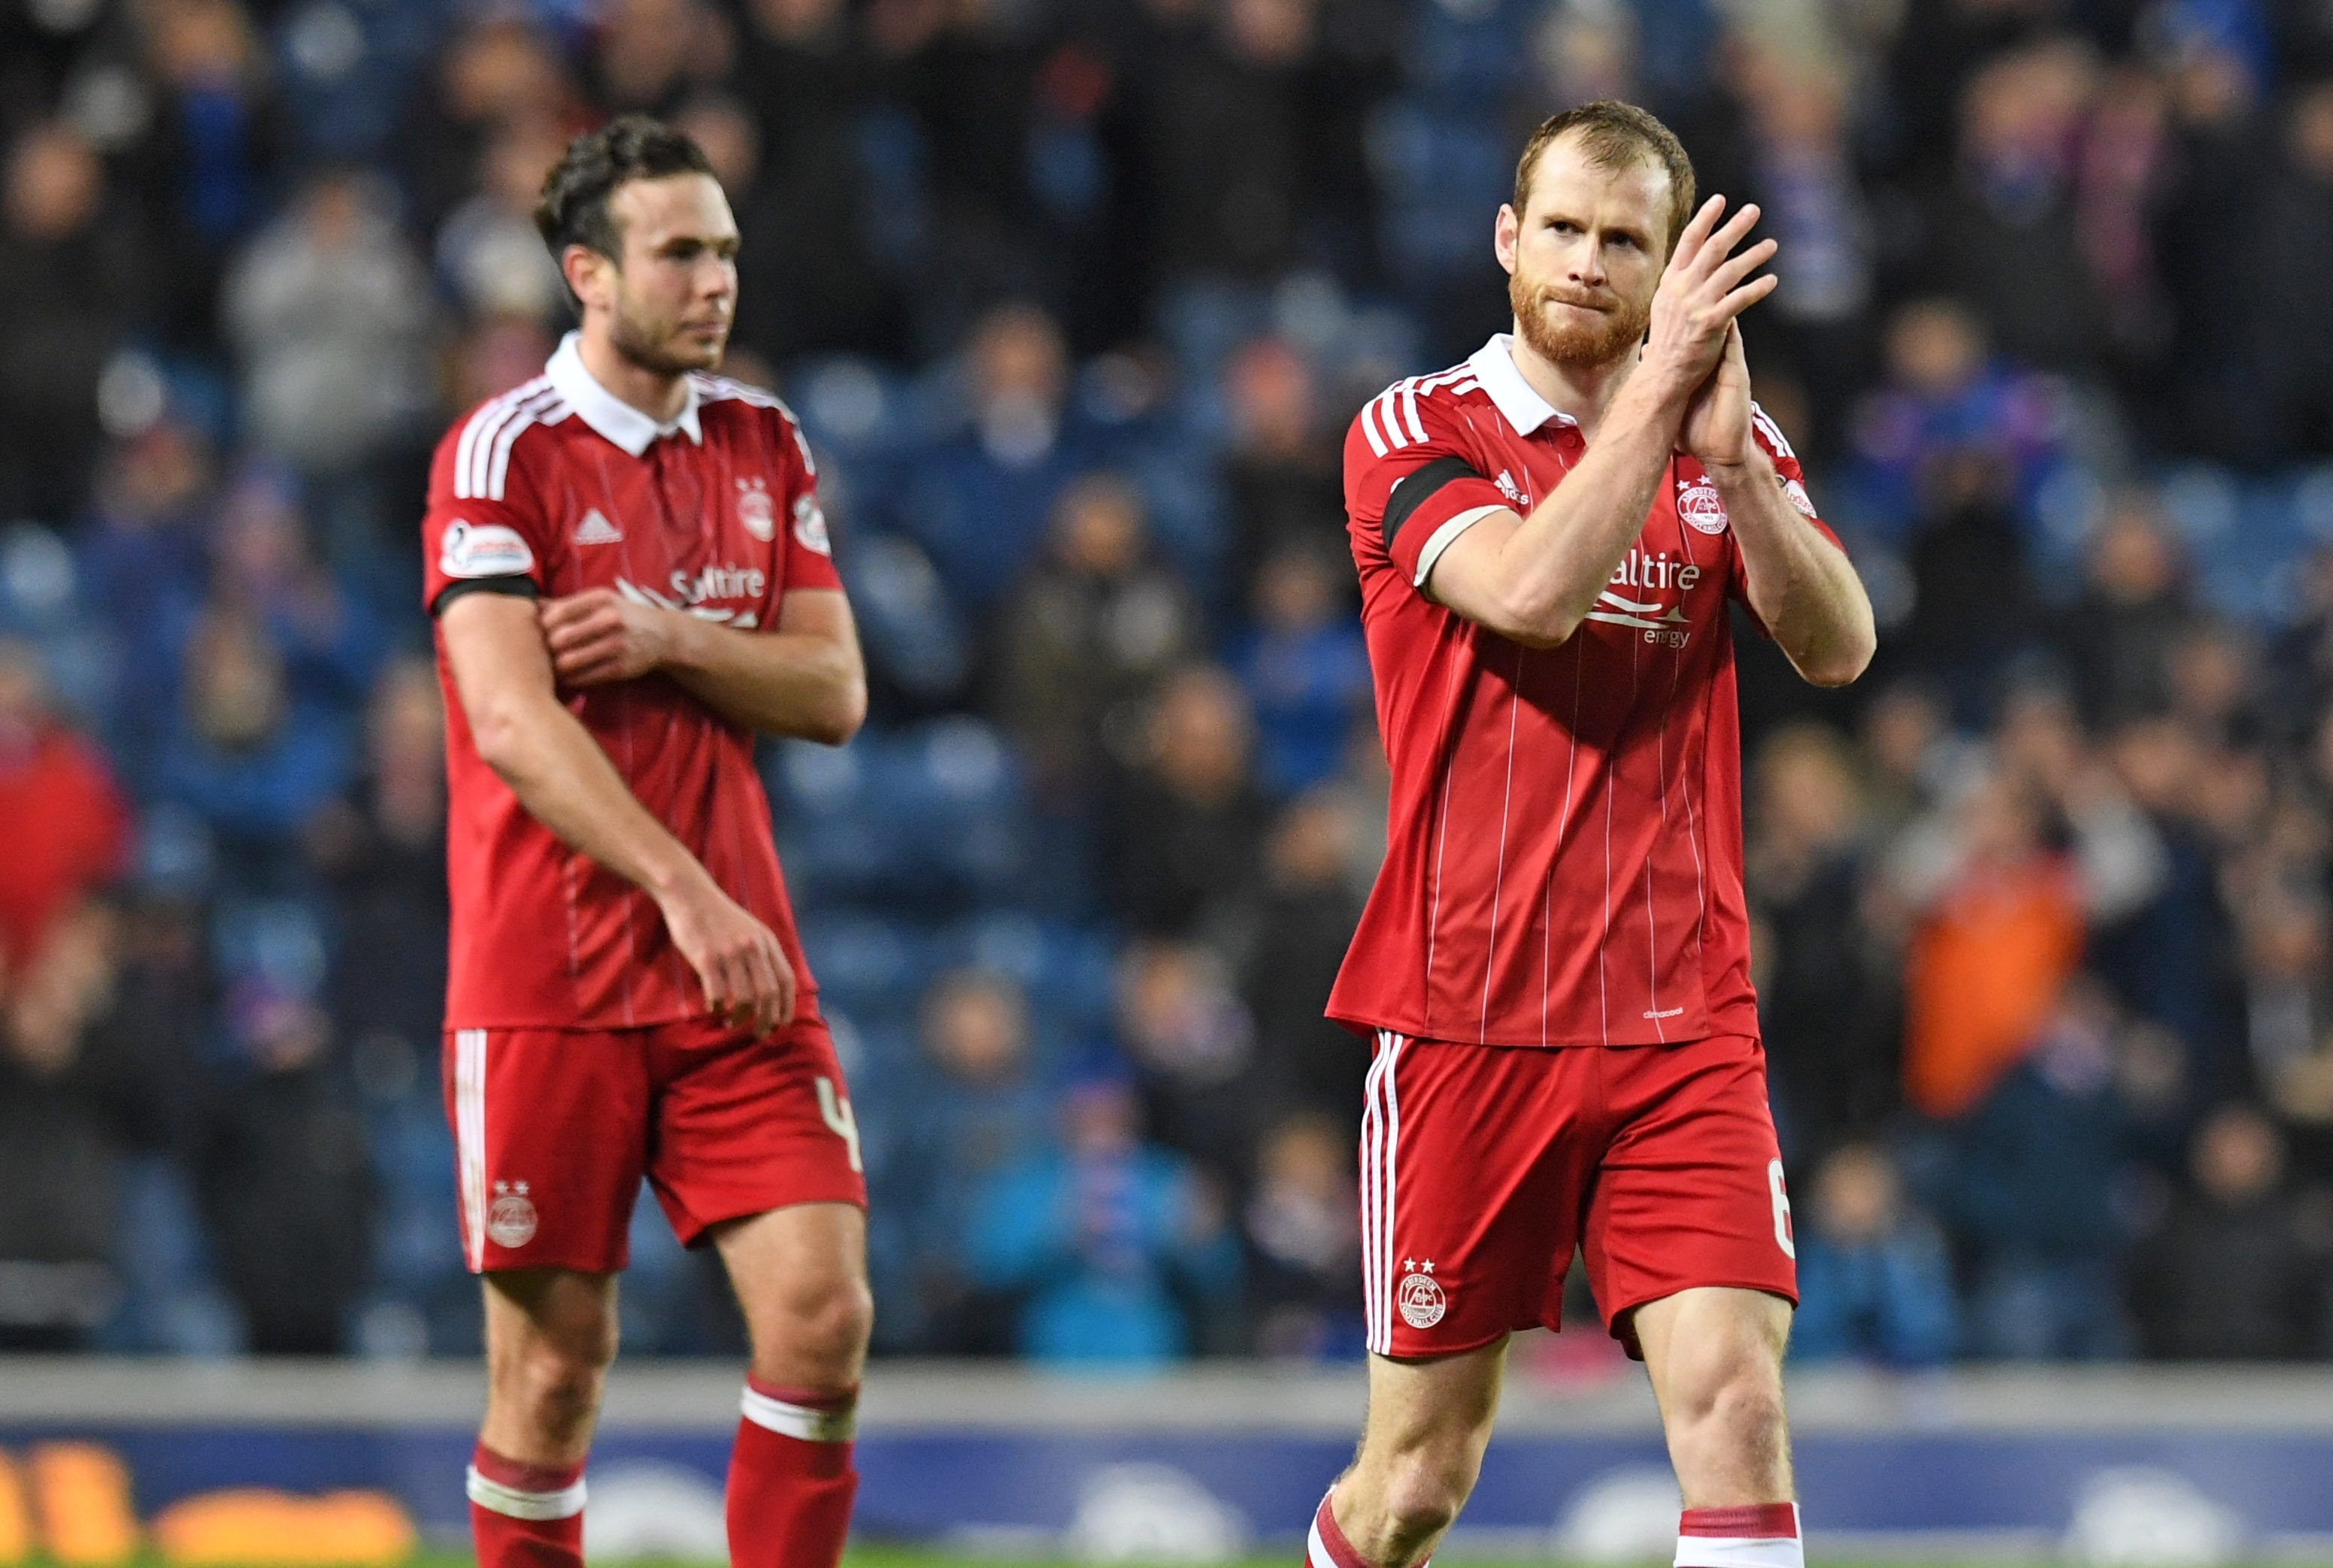 Aberdeen's Mark Reynolds applauded the supporters at full time after Rangers defeat